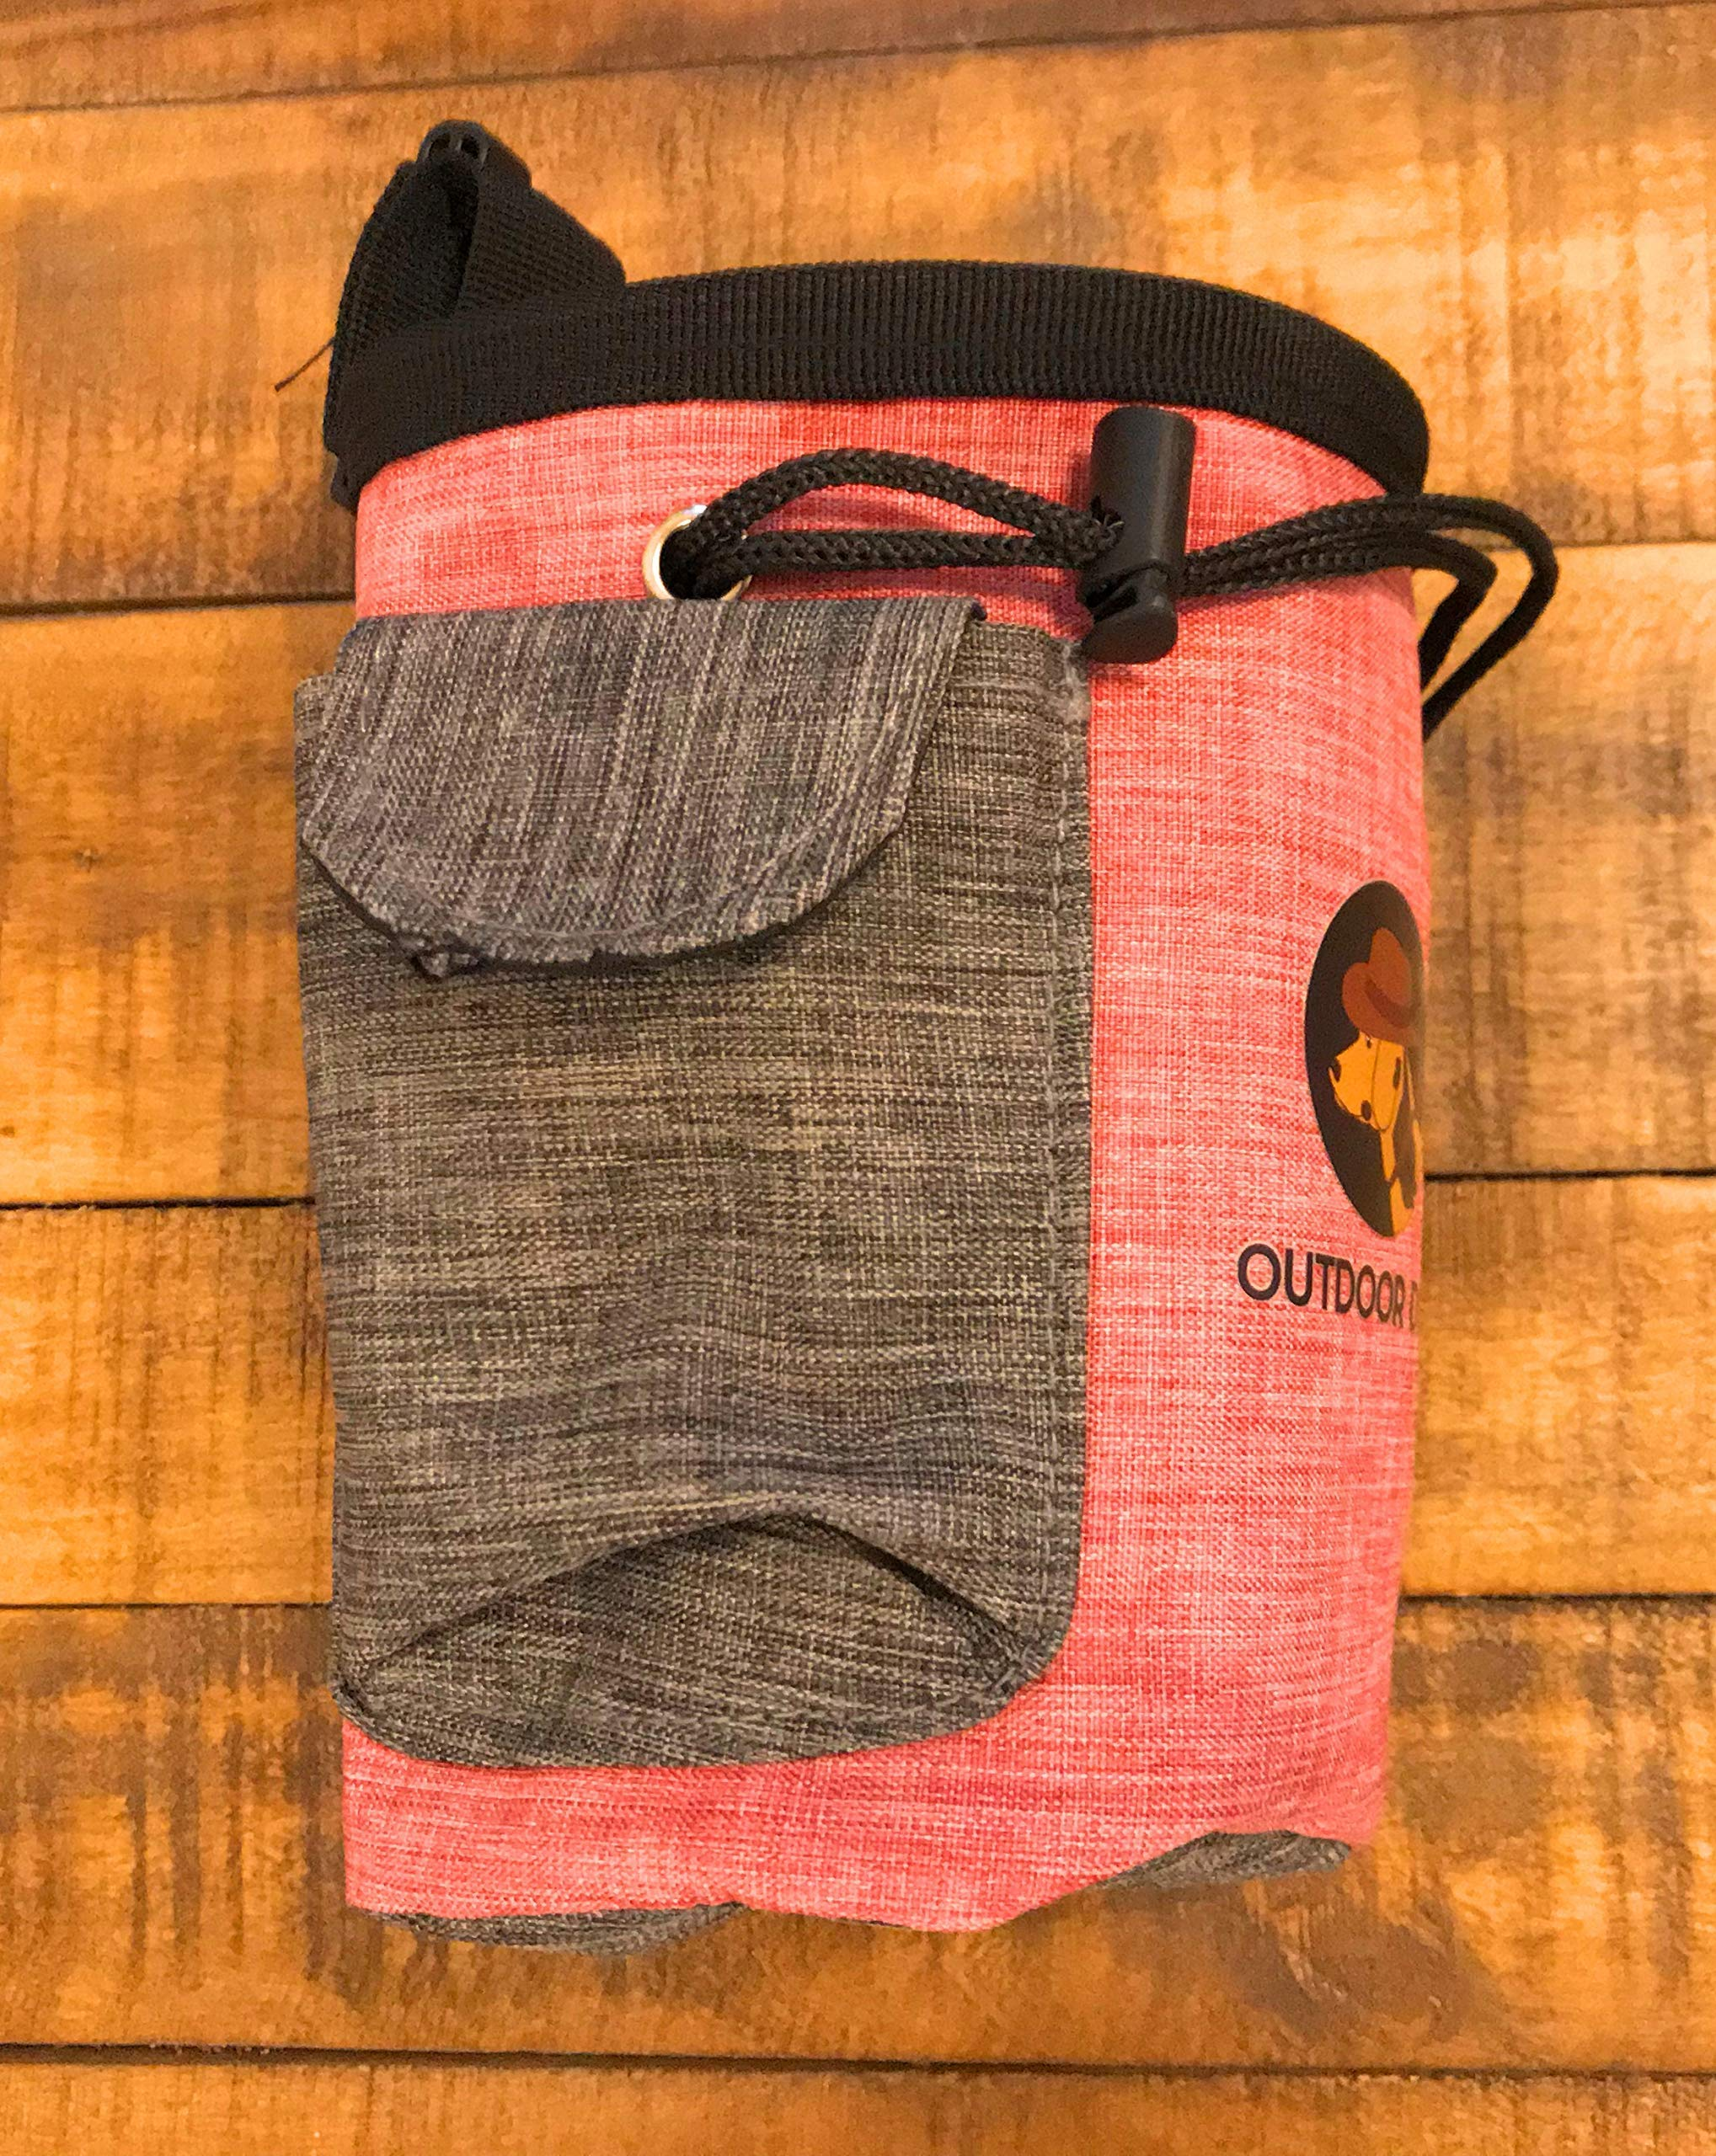 Outdoor Dog Hiking & Treat Pouch